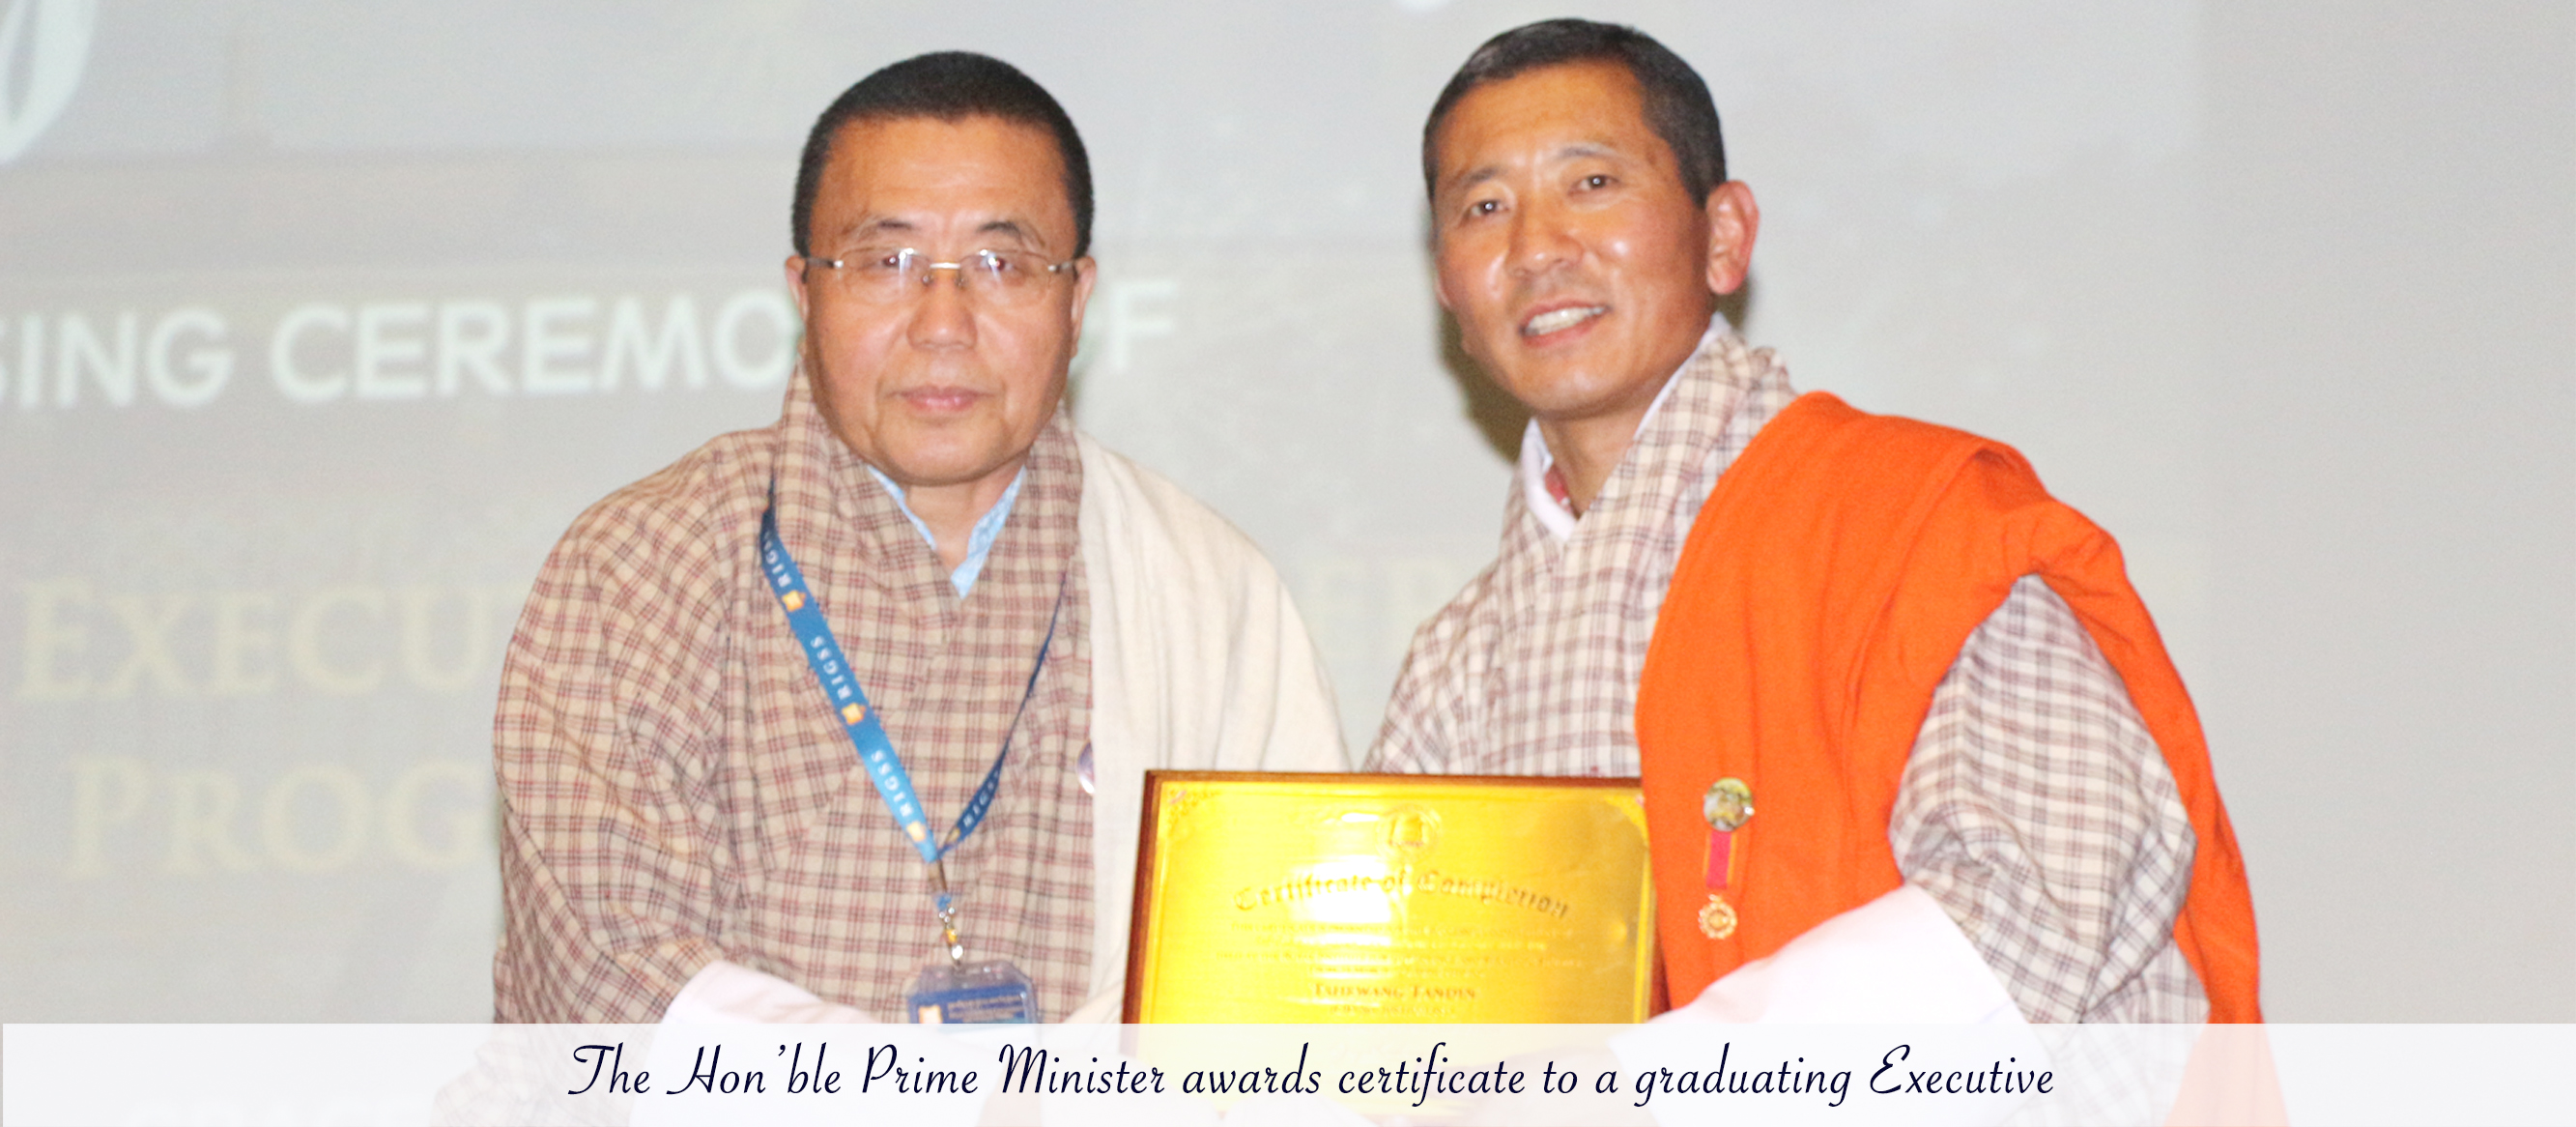 The Honb'le Prime Minister awarded the Certificate to Executive